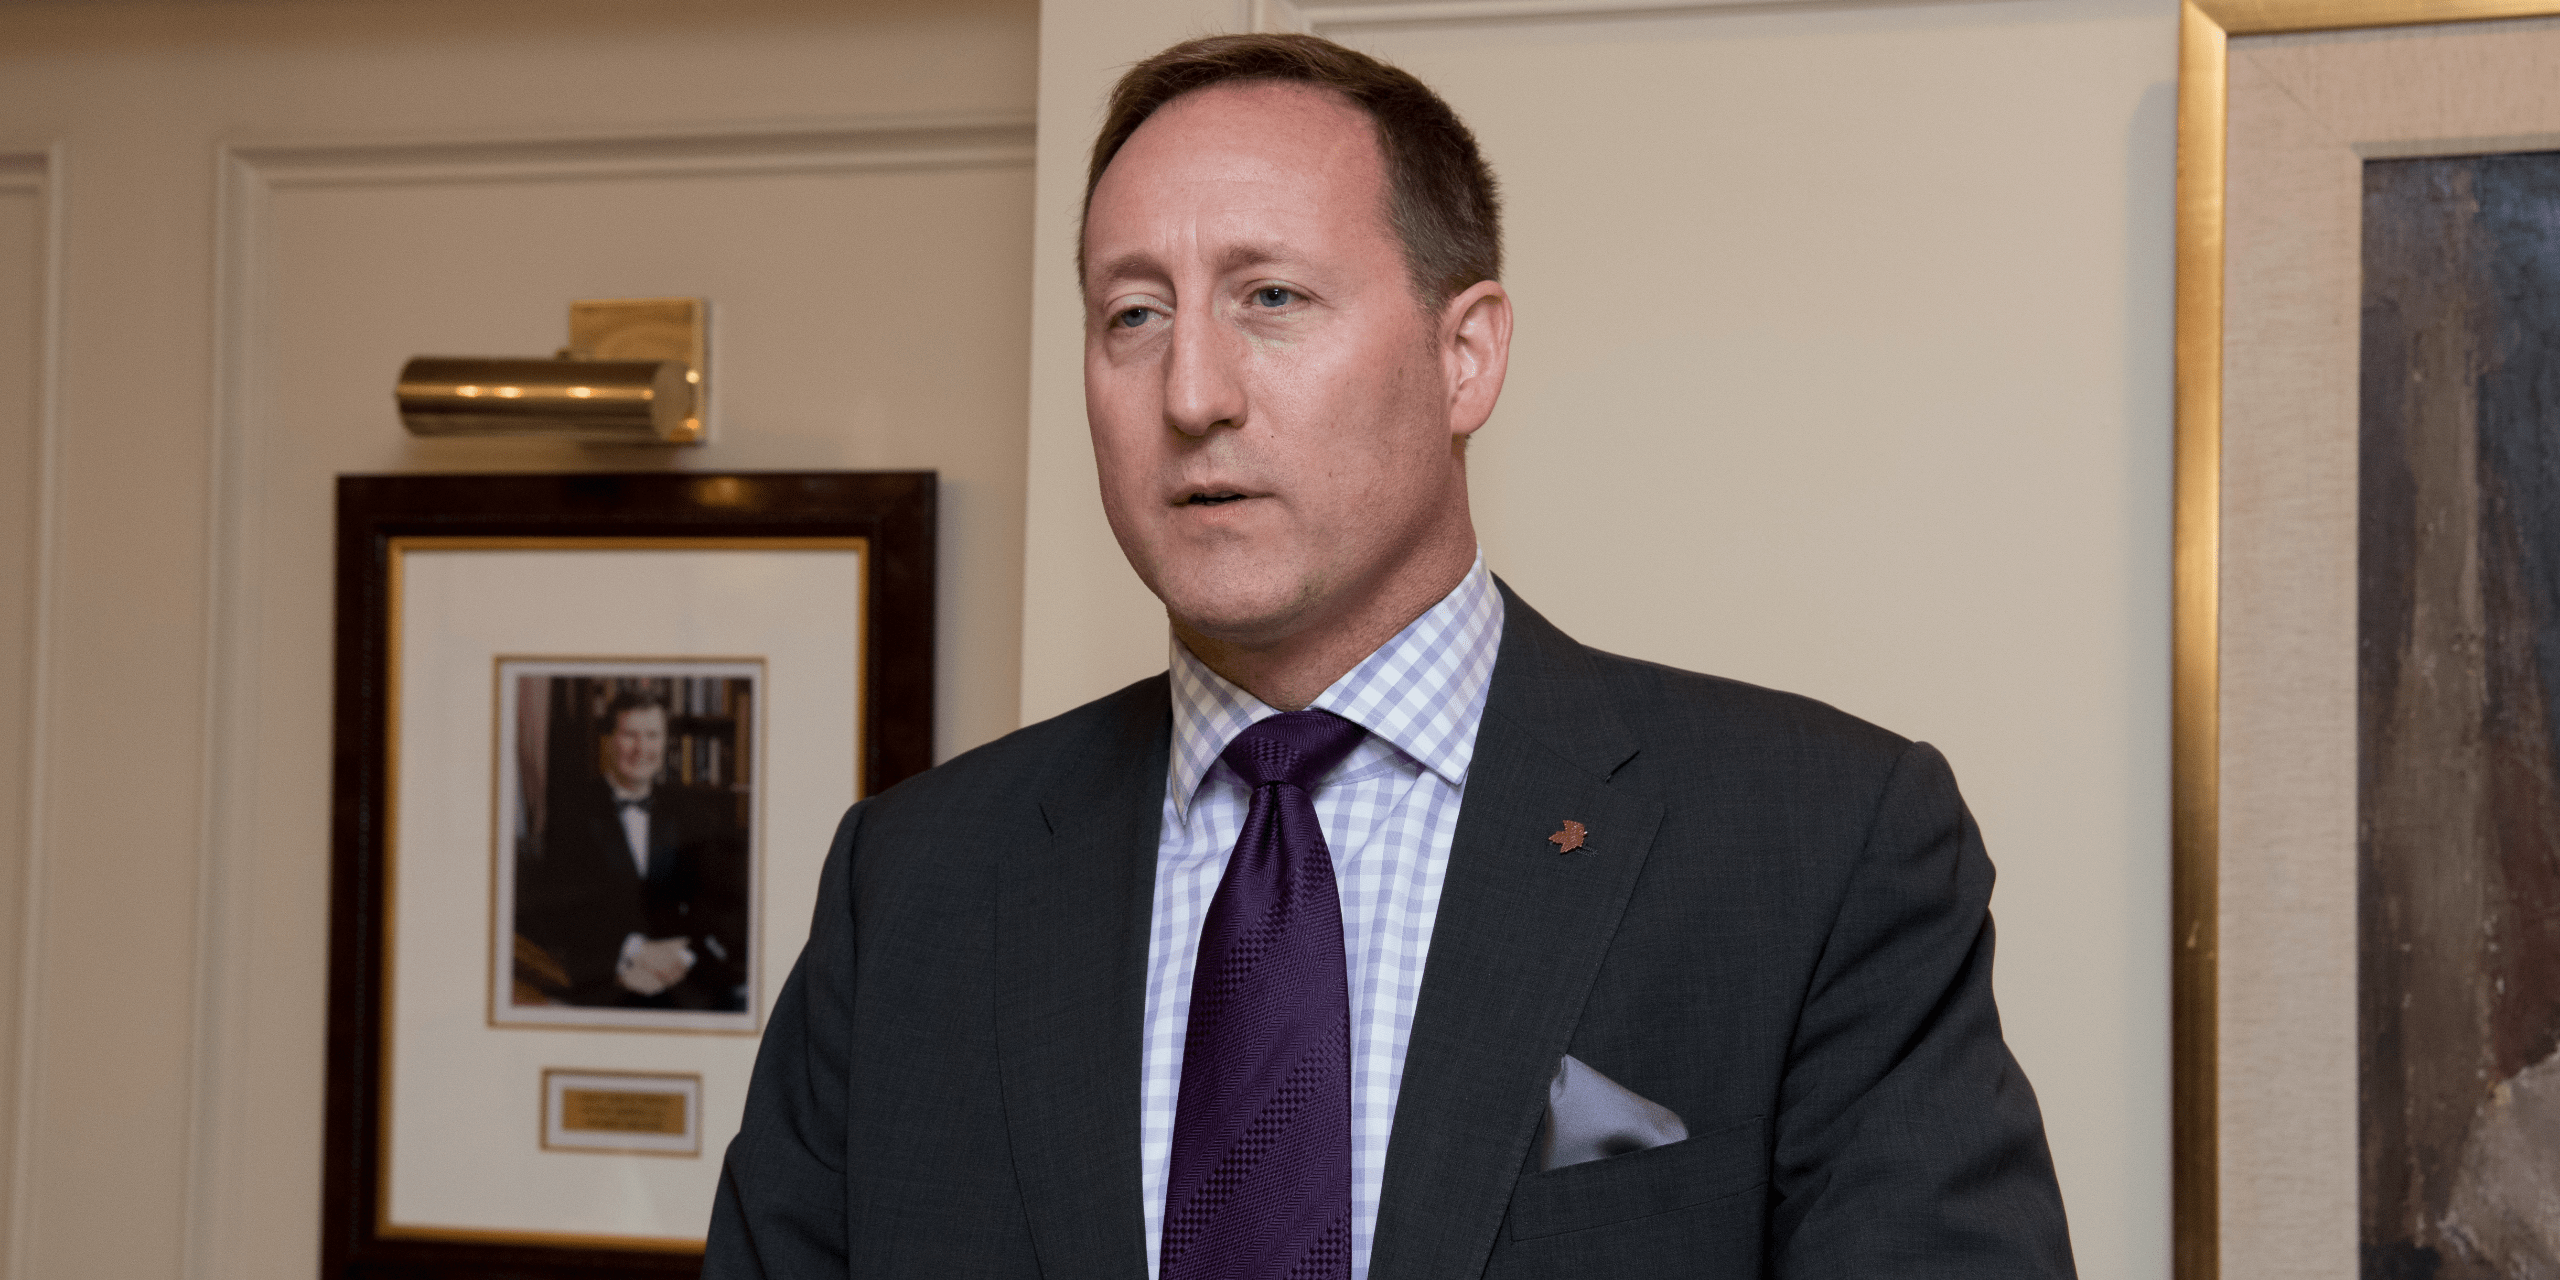 EXCLUSIVE: MacKay won't commit to move Canadian embassy to Jerusalem, breaking with Conservative Party policy